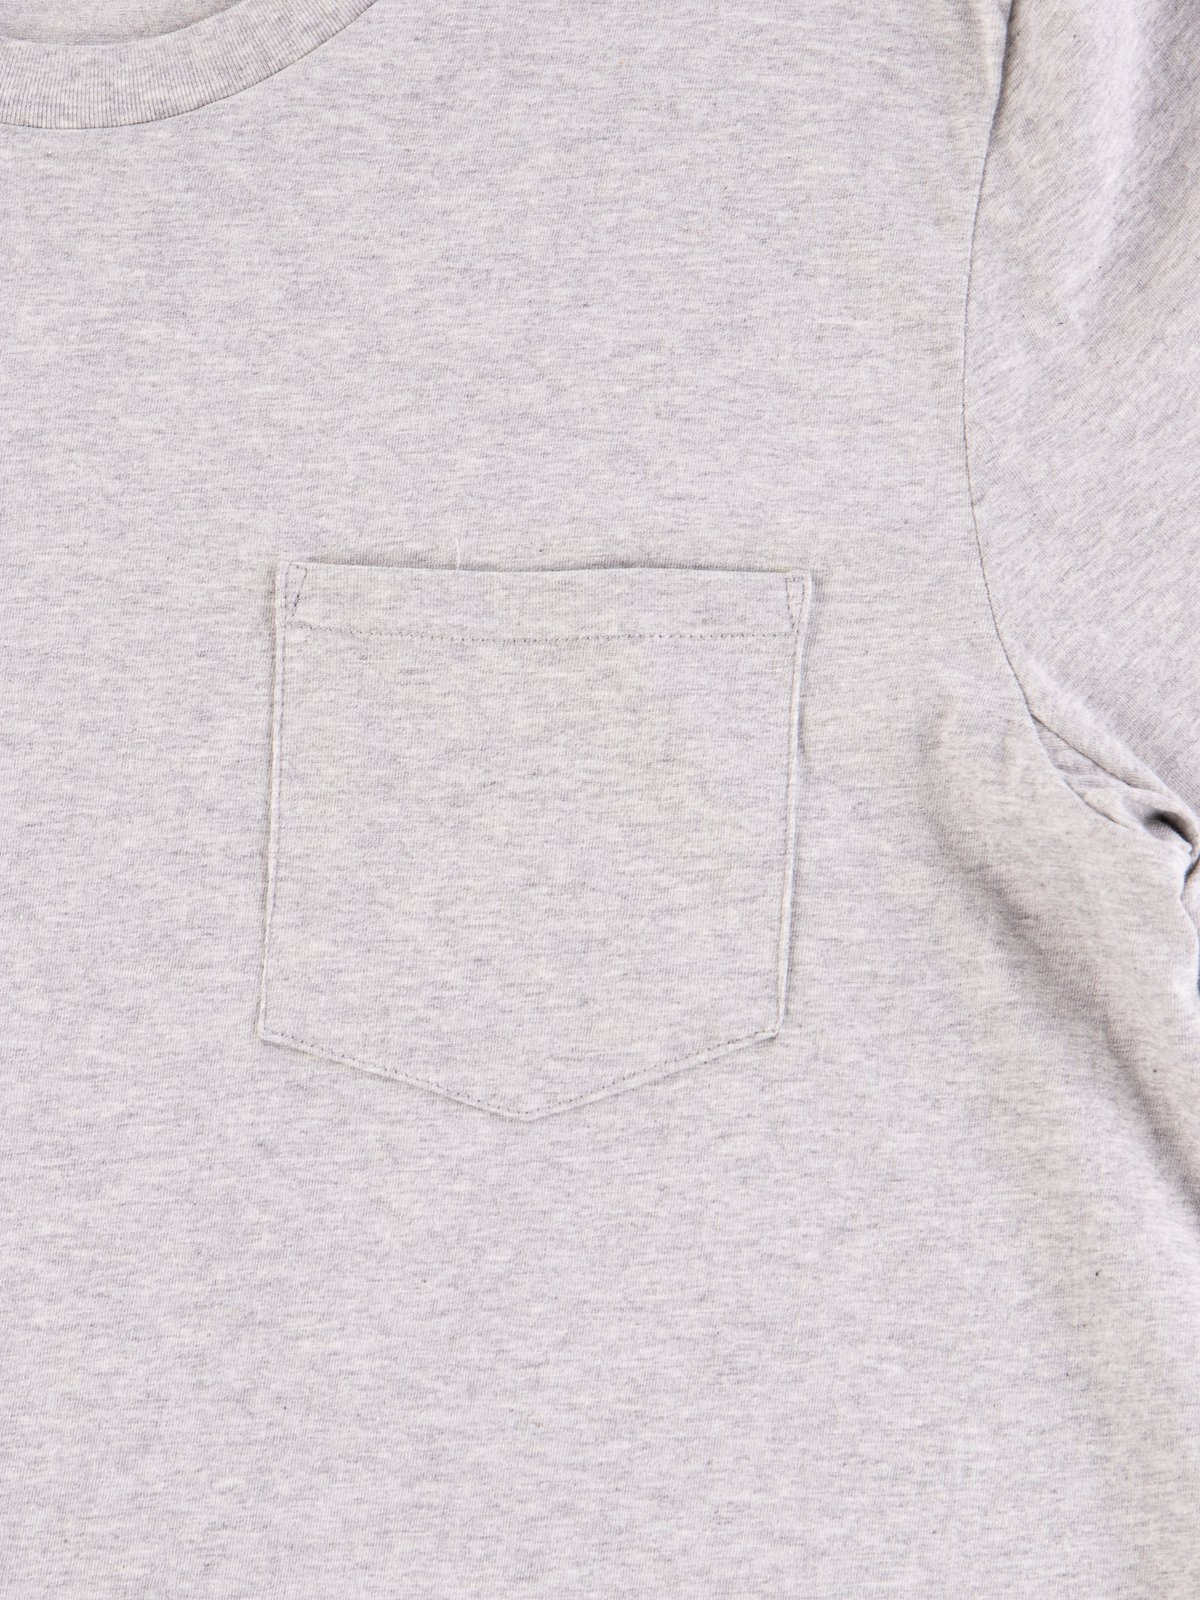 Grey Melange Good Basics CTP01 Pocket Crew Neck Tee - Image 4